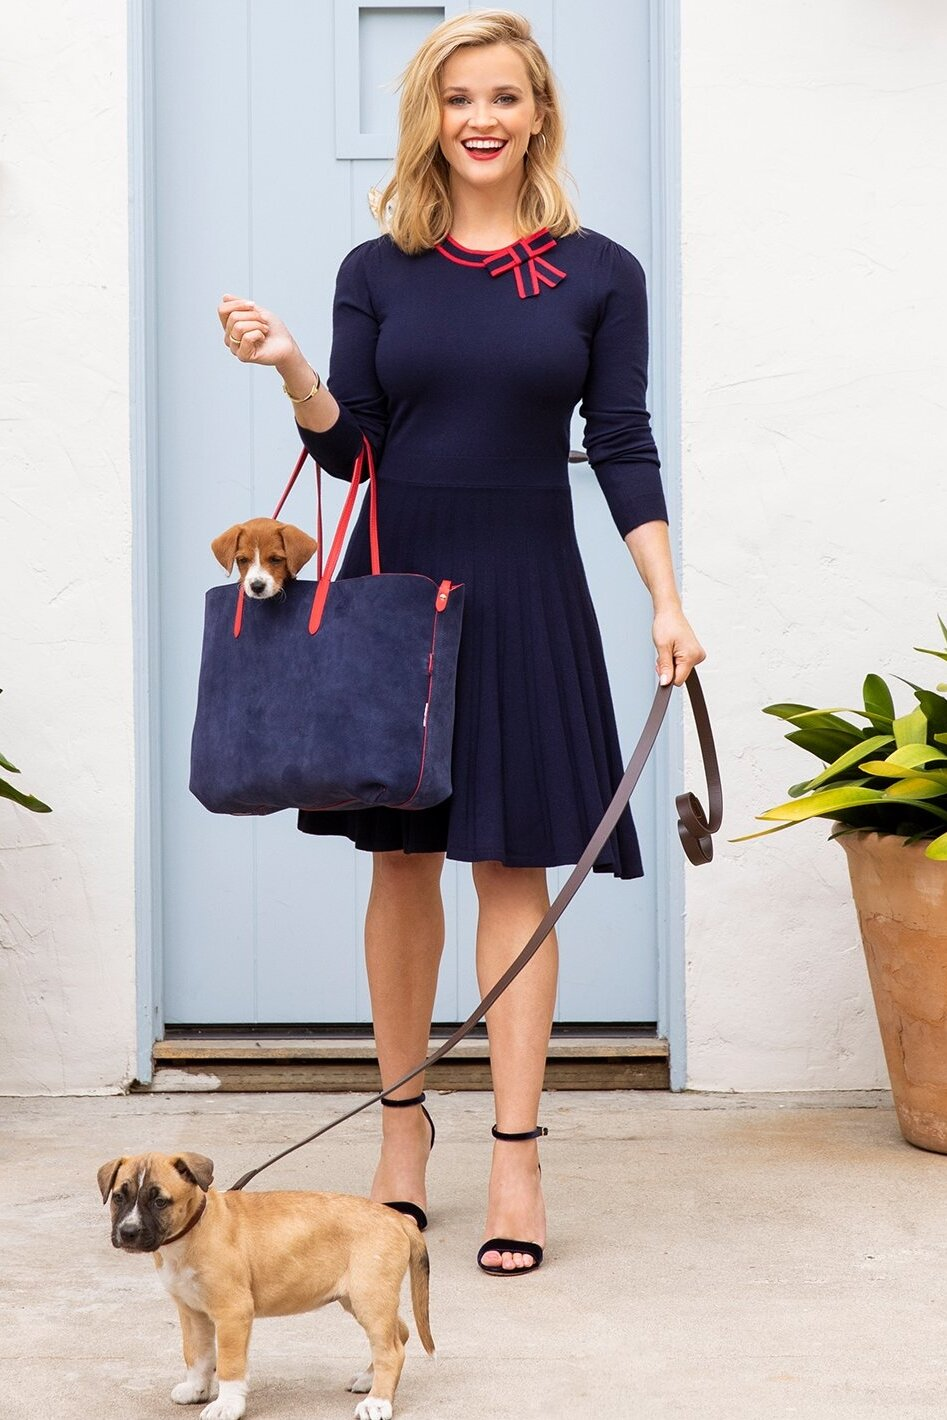 reese-witherspoon-draper-james-navy-dress-and-suede-leather-tote.jpg